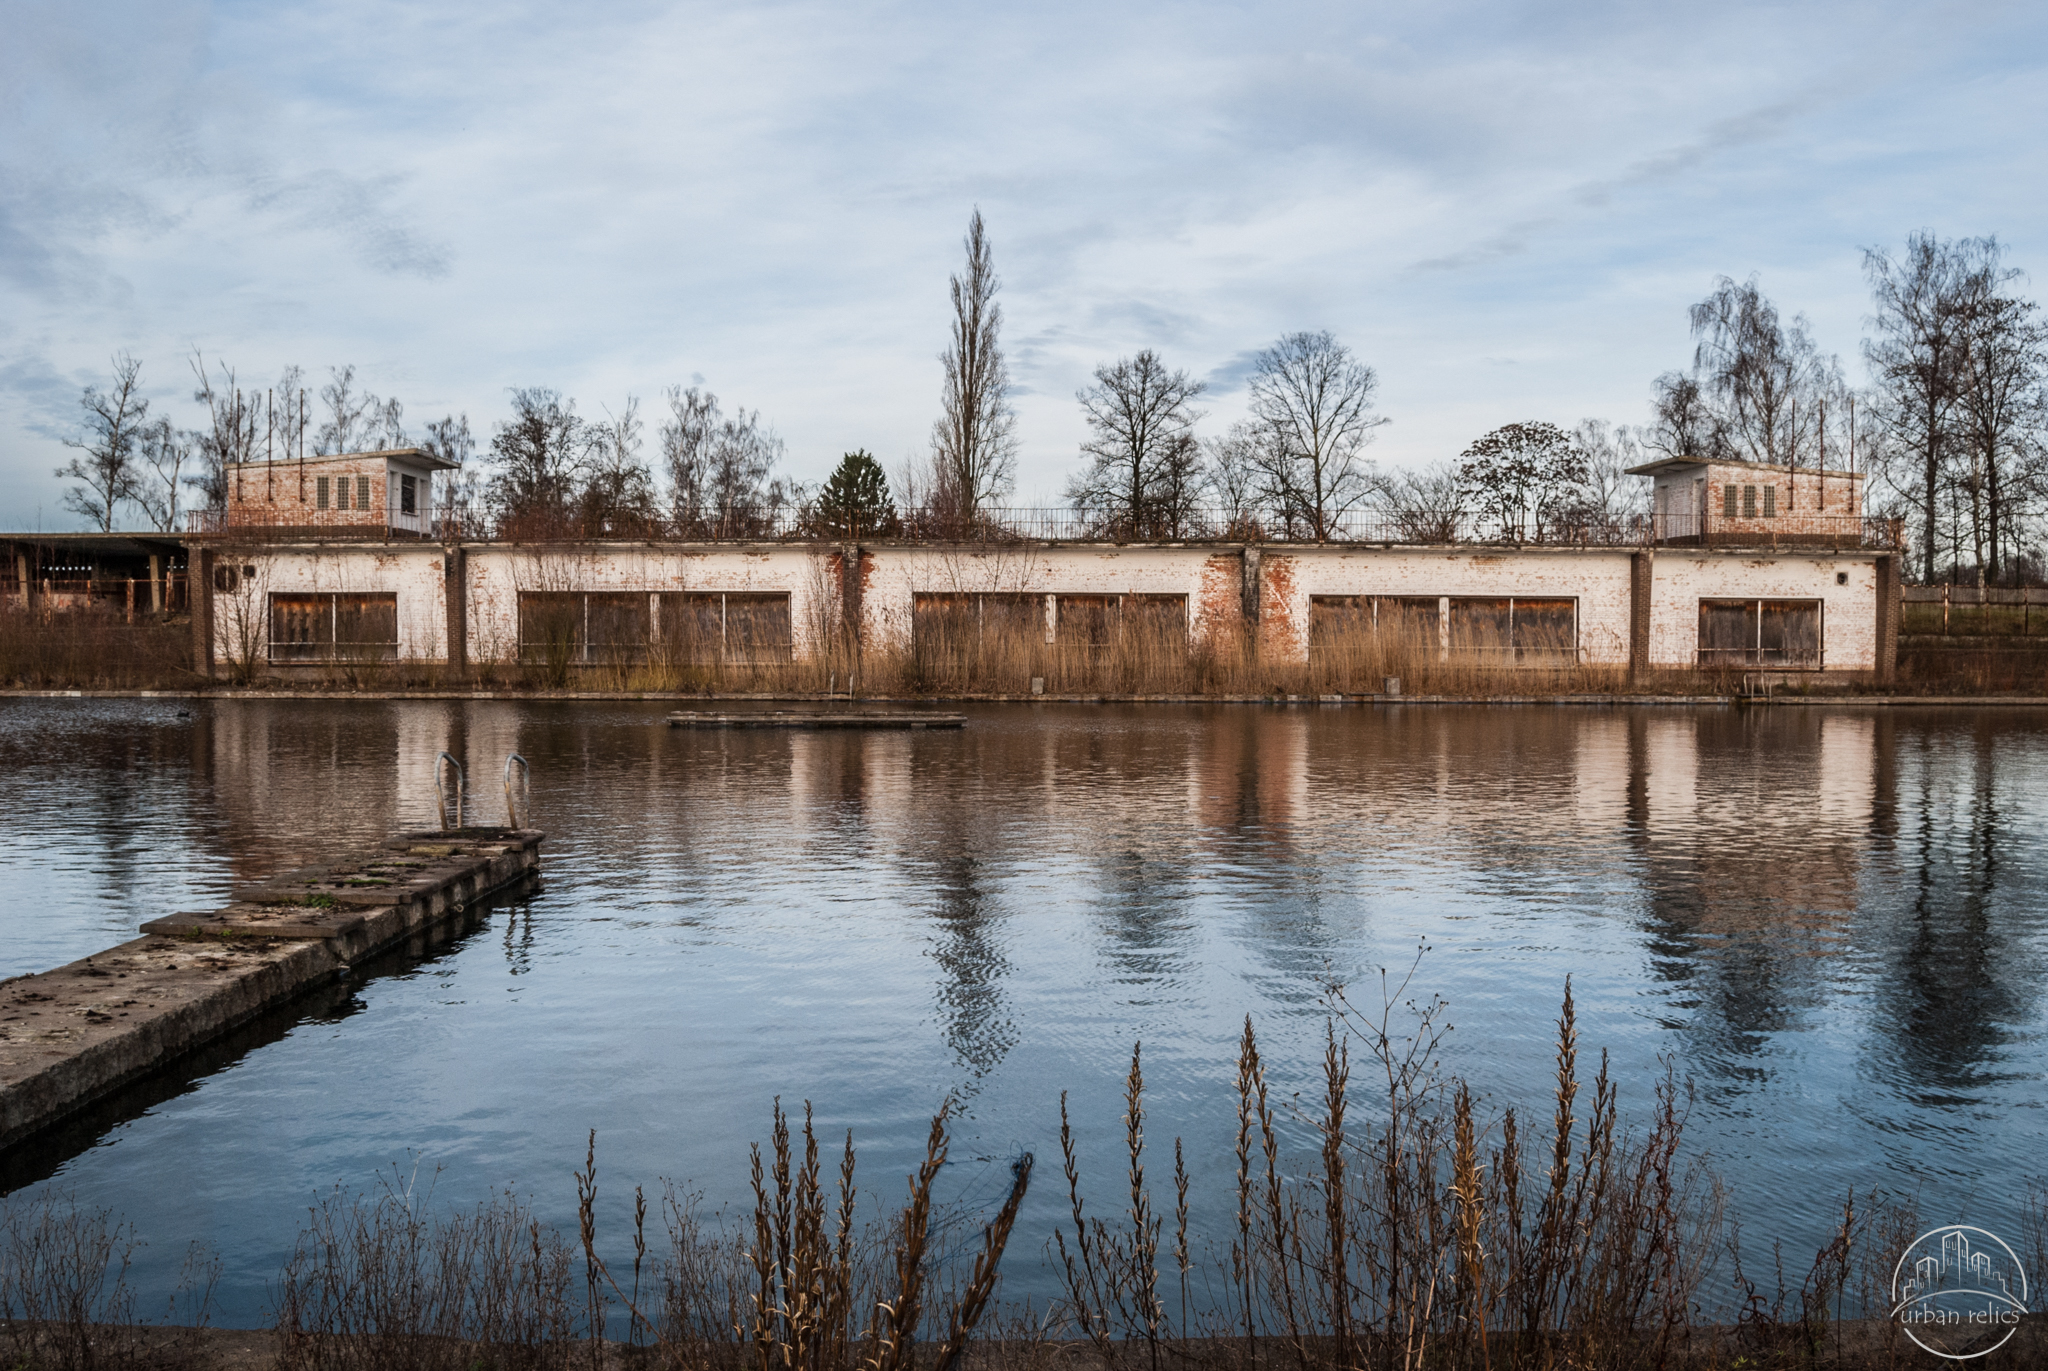 Grootste Europese Zwembad Bloso Pool Urban Relics